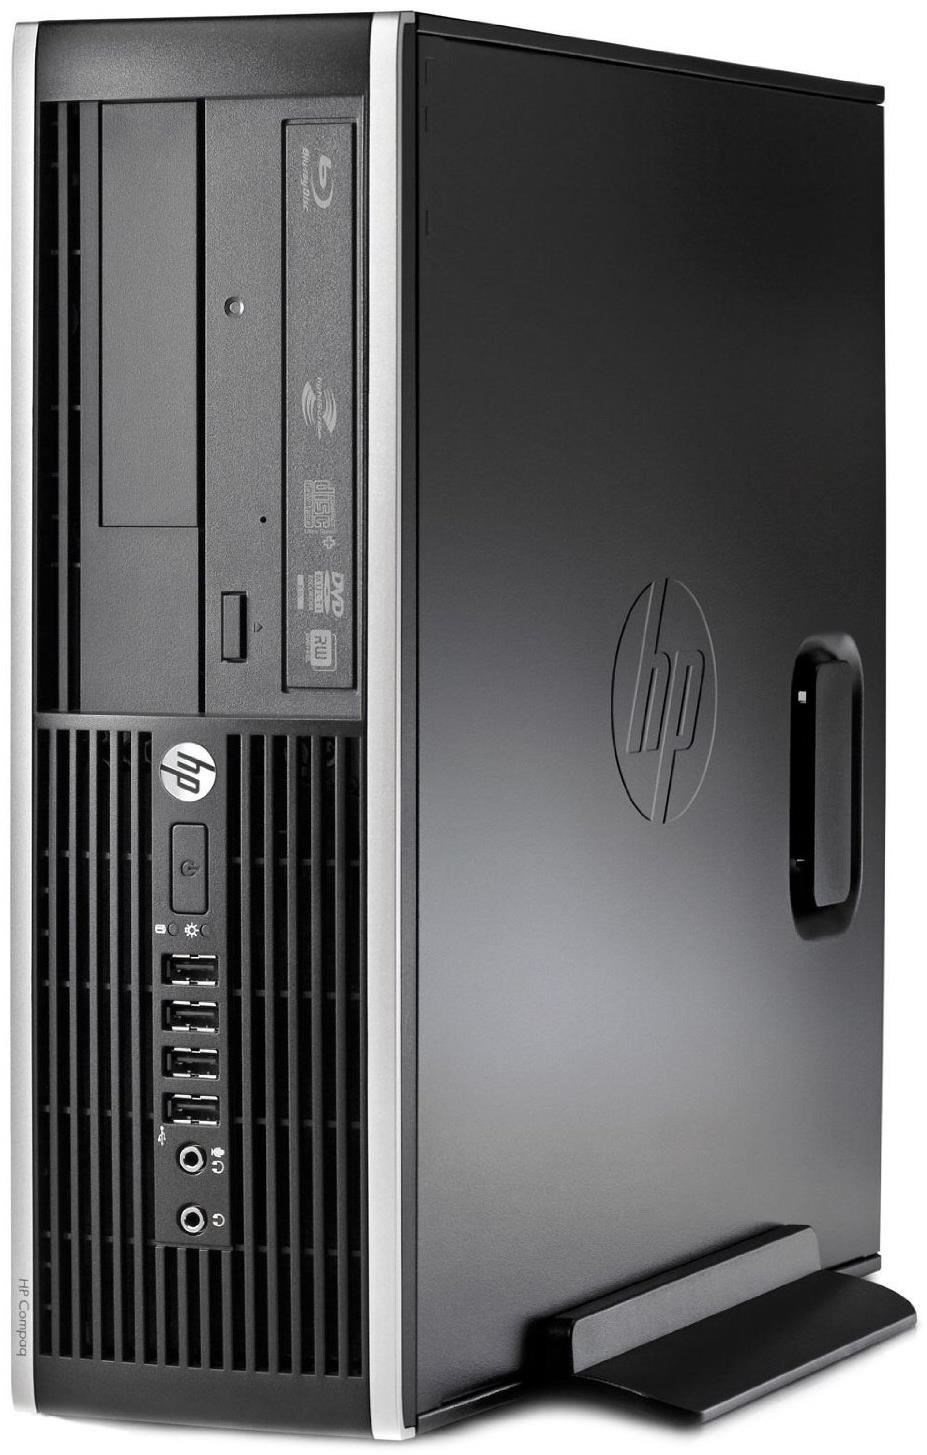 HP 6200 Pro Refurbished i5-2400 / 4GB DDR3 / 250 GB HDD / Win 10 Pro